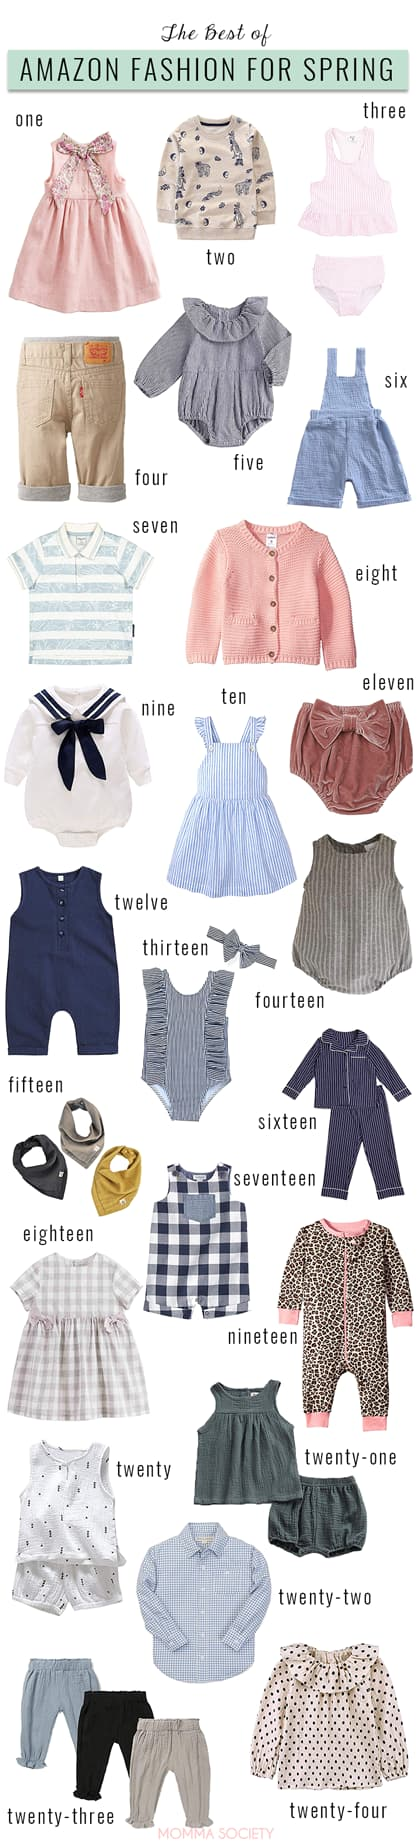 The Best of Spring Items for Toddlers + Babies on Amazon Fashion | Momma Society